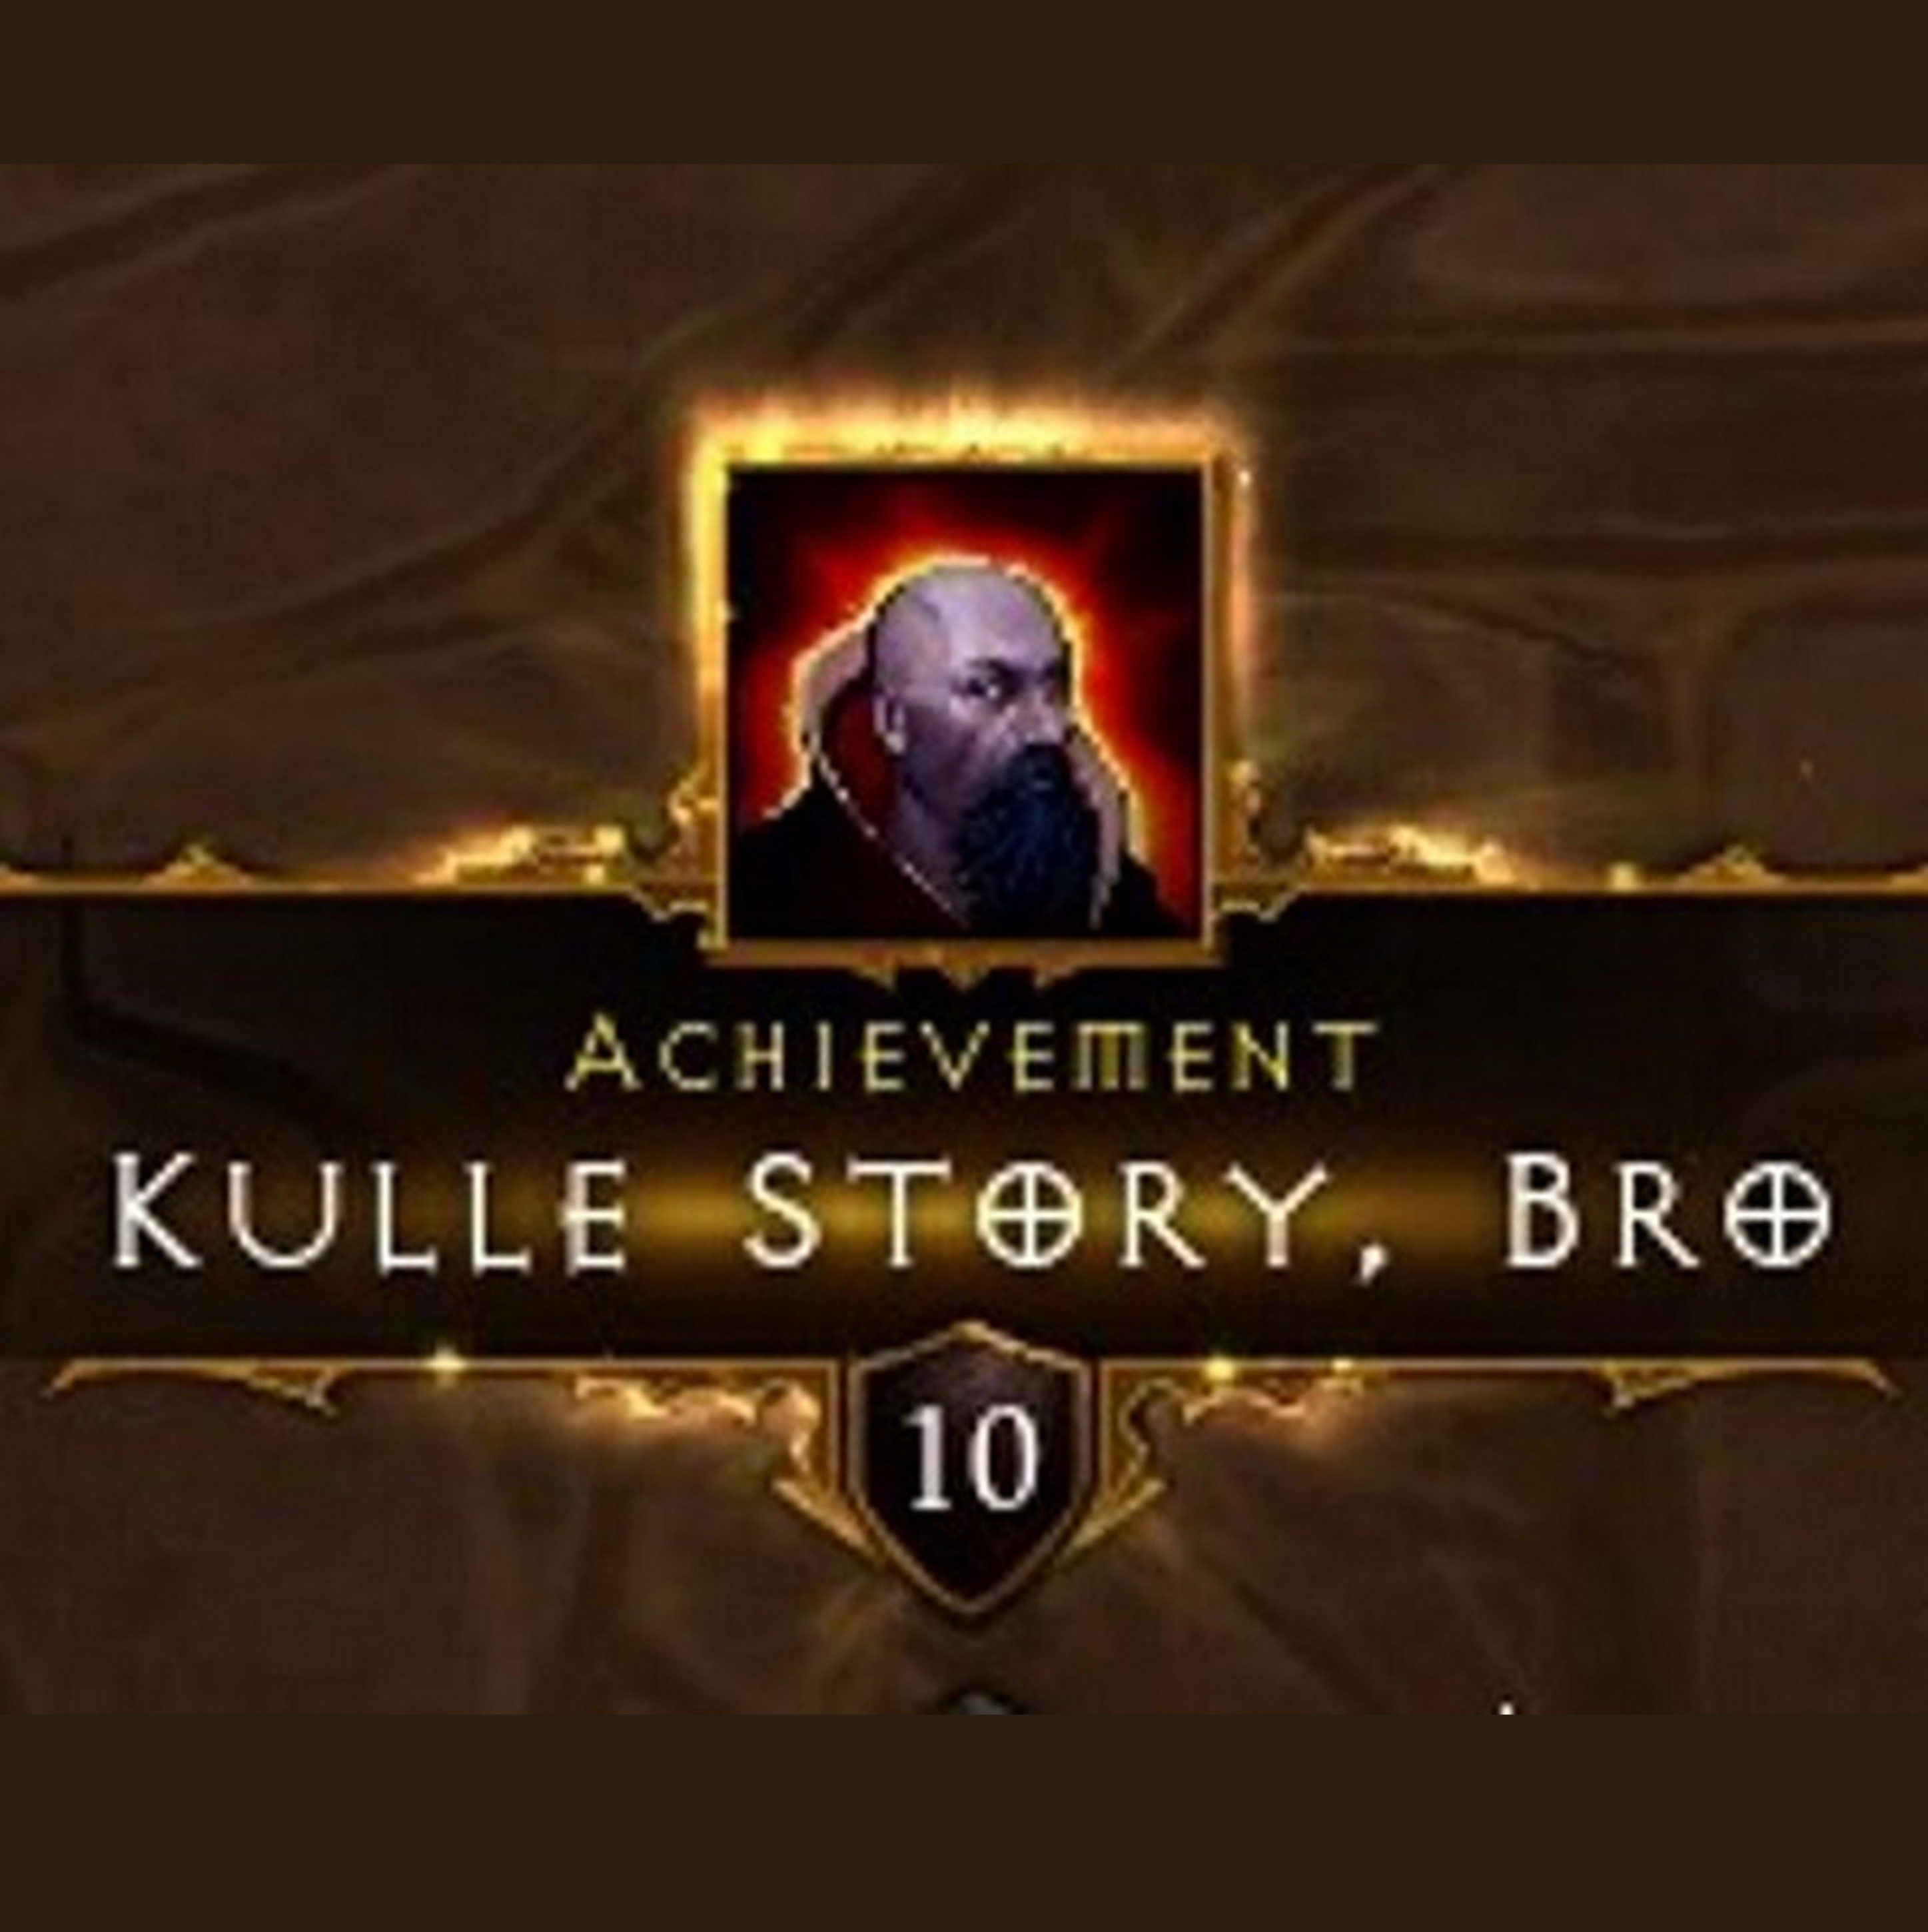 Kulle Story Bro - A Diablo 3 Podcast Episode 35